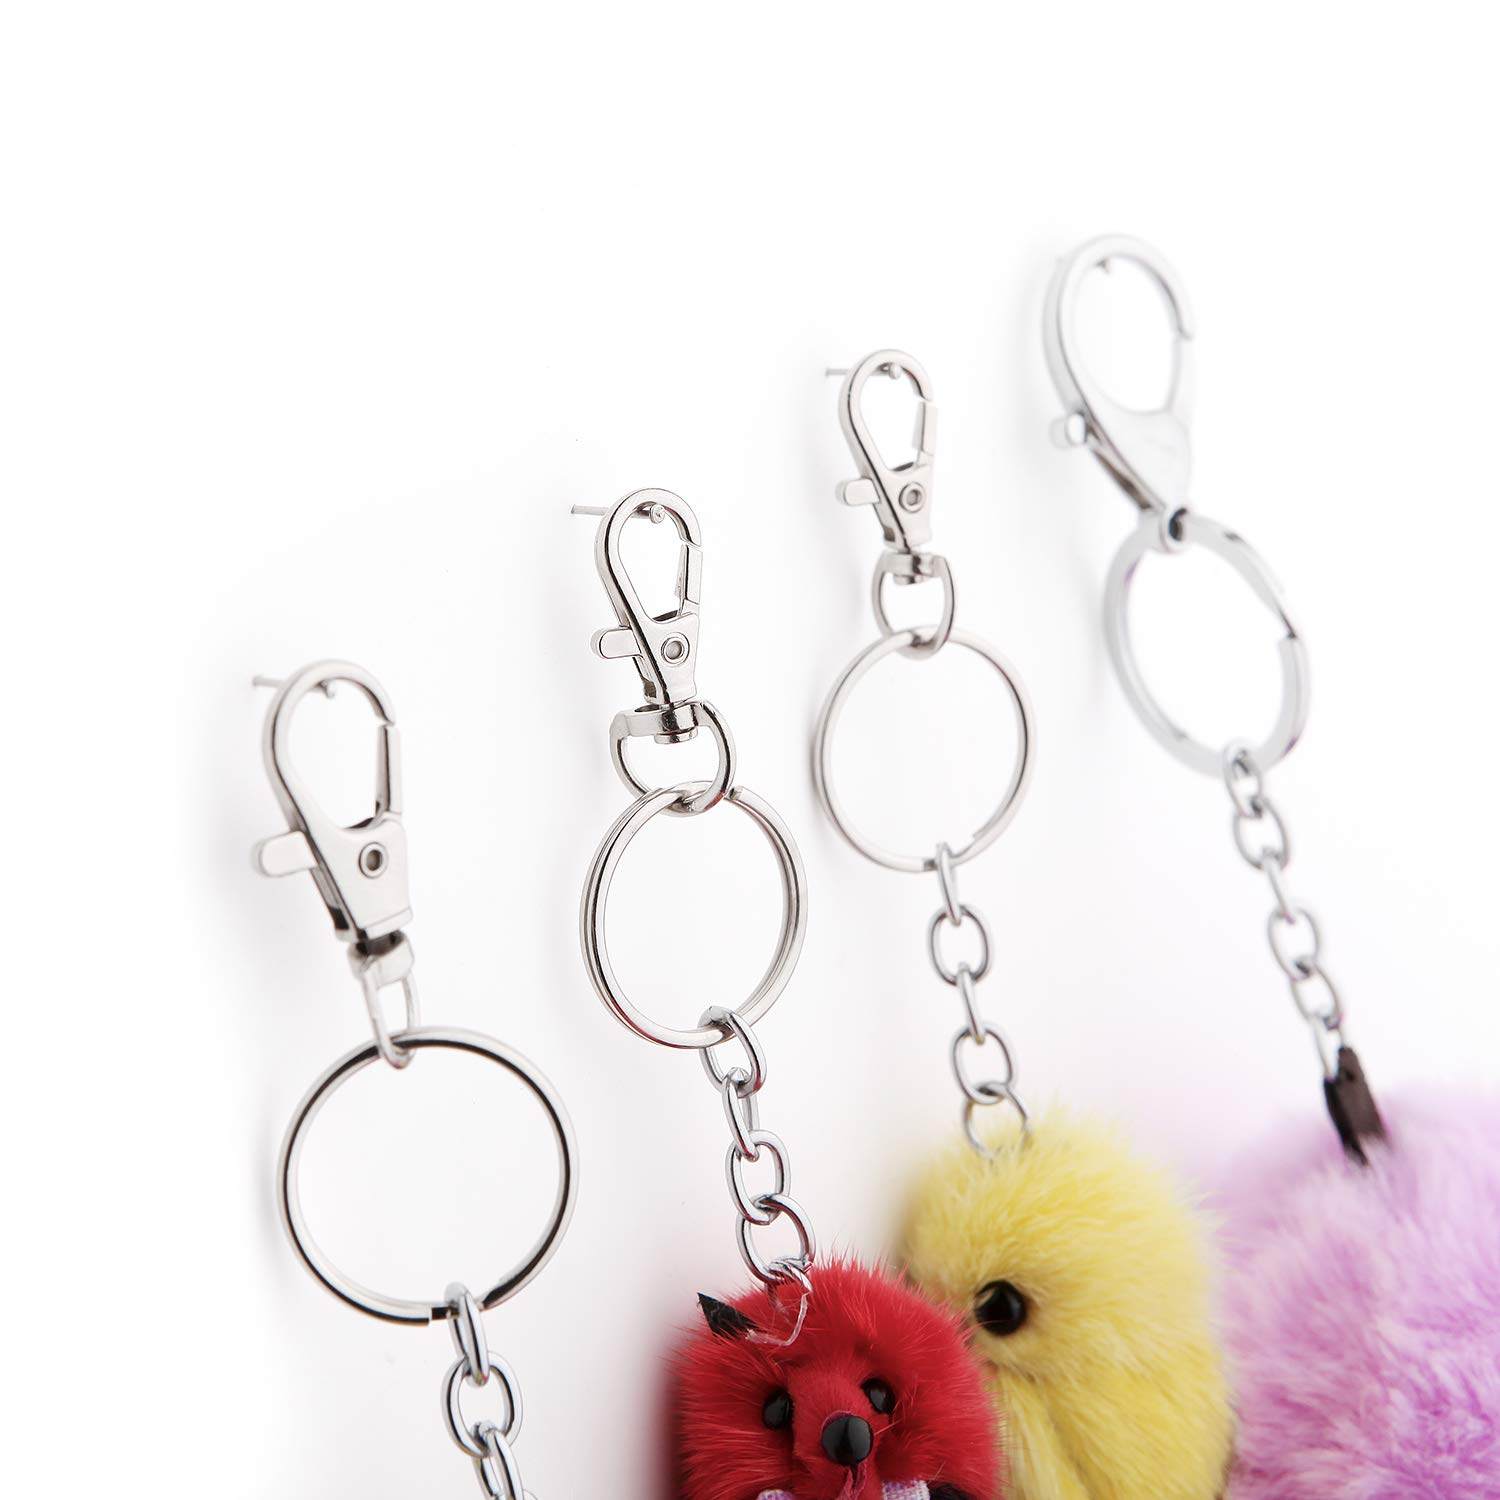 Small Size 100 Pcs Mental Swivel Clasps with Key Rings